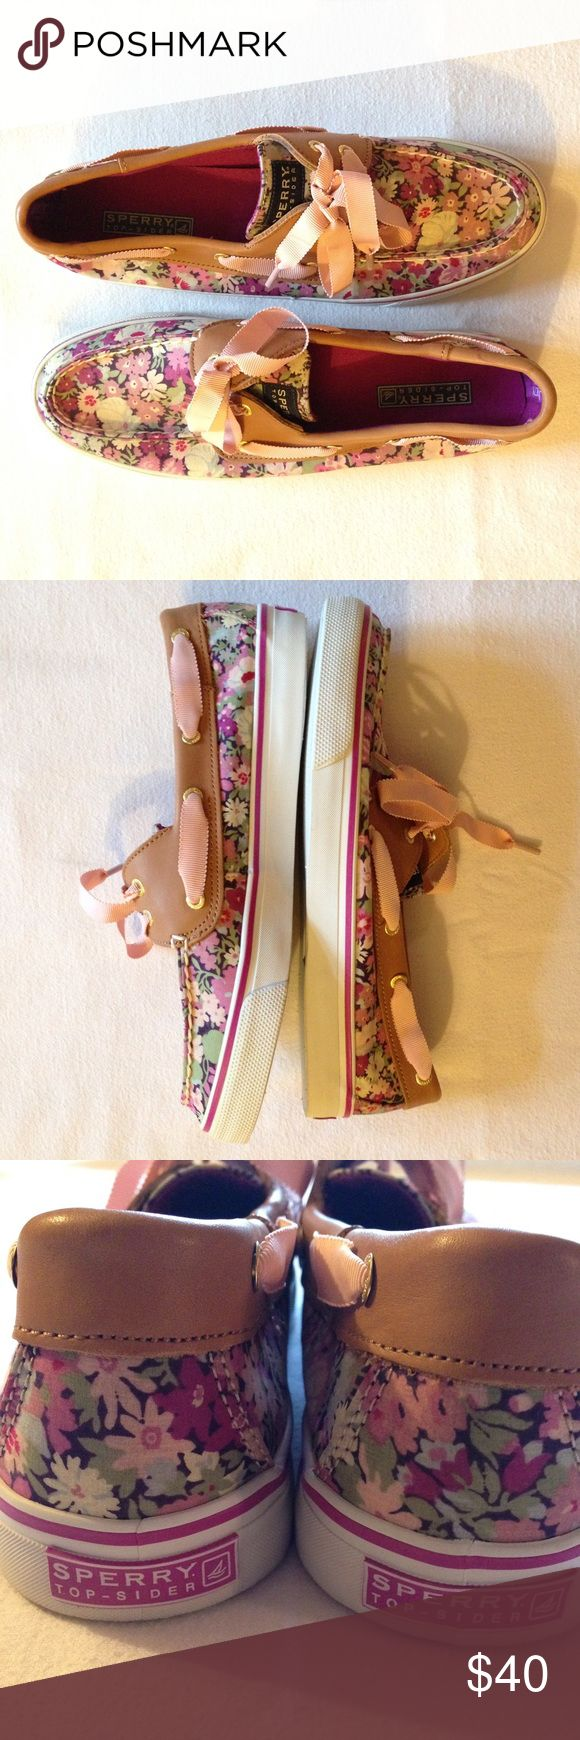 Brand New Sperry Top Sider Pastel Floral Shoes Brand New Sperry Top Sider Pastel Floral Shoes - Absolutely gorgeous floral print on these brand new Sperrys! Light brown trim. Pastel shades on purple, green and blue! Brand new, never worn. They were taken out of the box and have been sitting in the closet ever since. Ladies size 9M. TAGS: Bahama liberty boat california Sperry Top-Sider Shoes Flats & Loafers